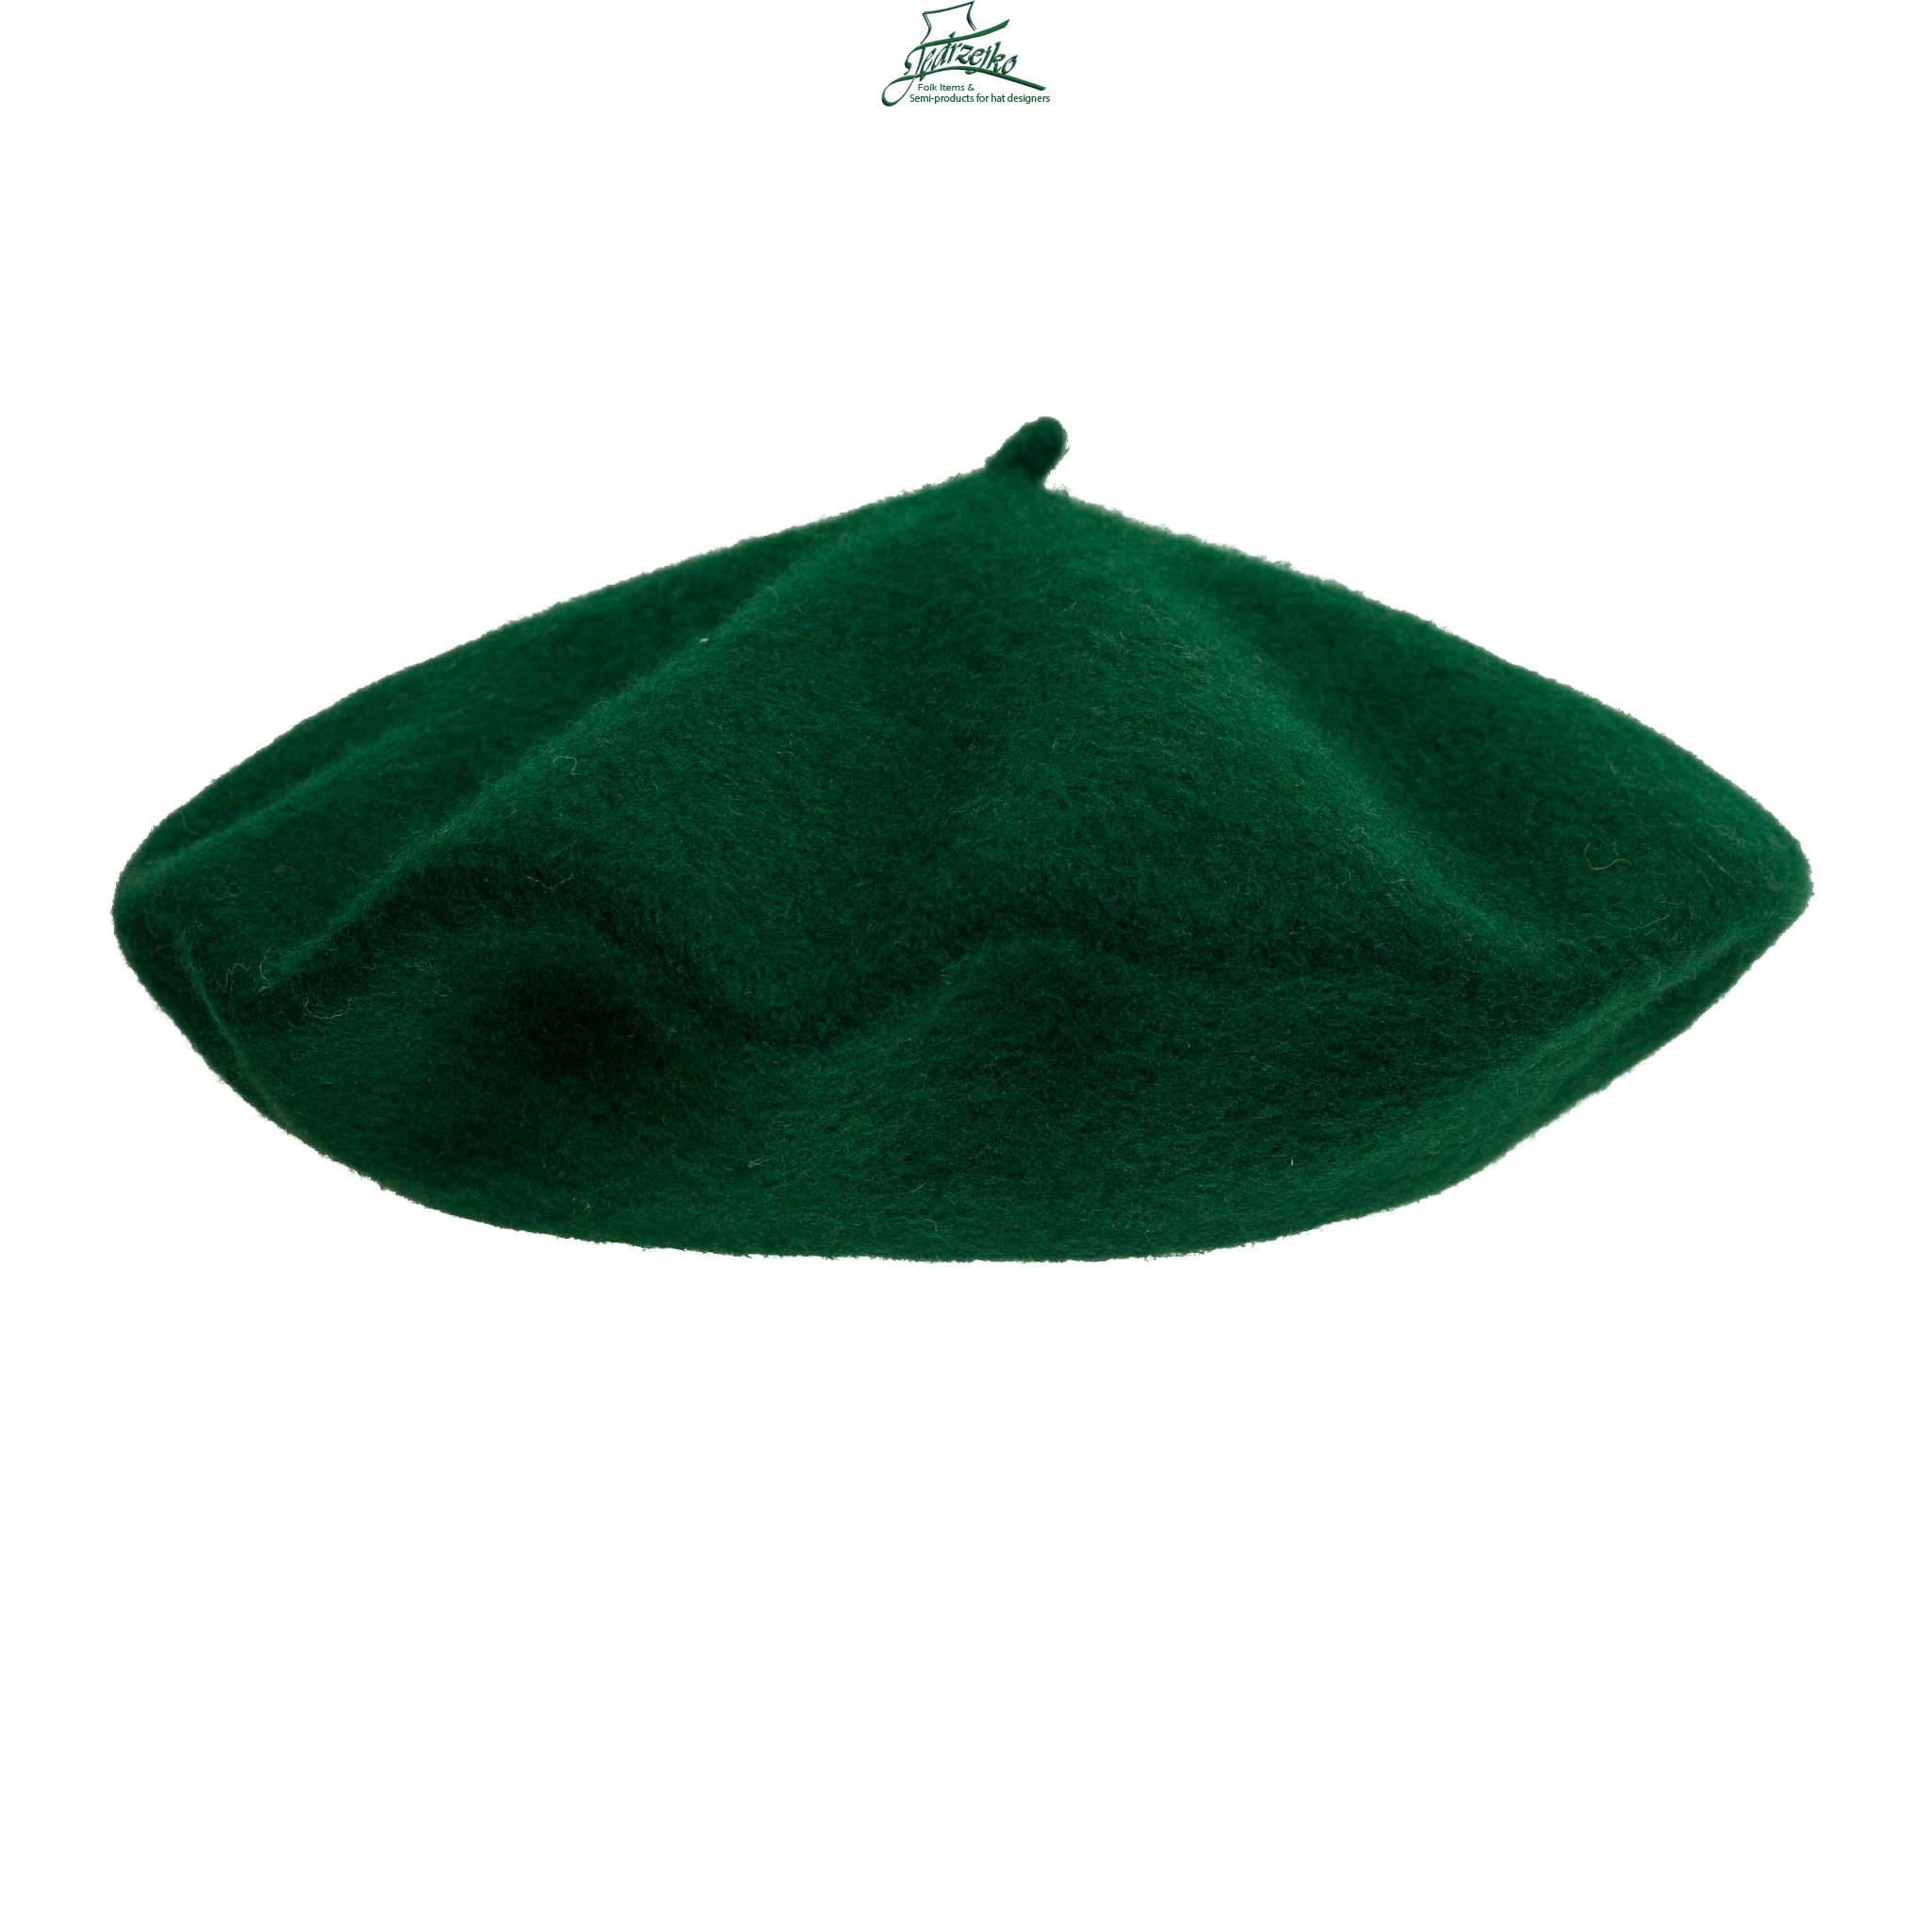 100% Wool beret with antenna - Bottle Green Millinery Hat Supply ... a6eed1c34e98